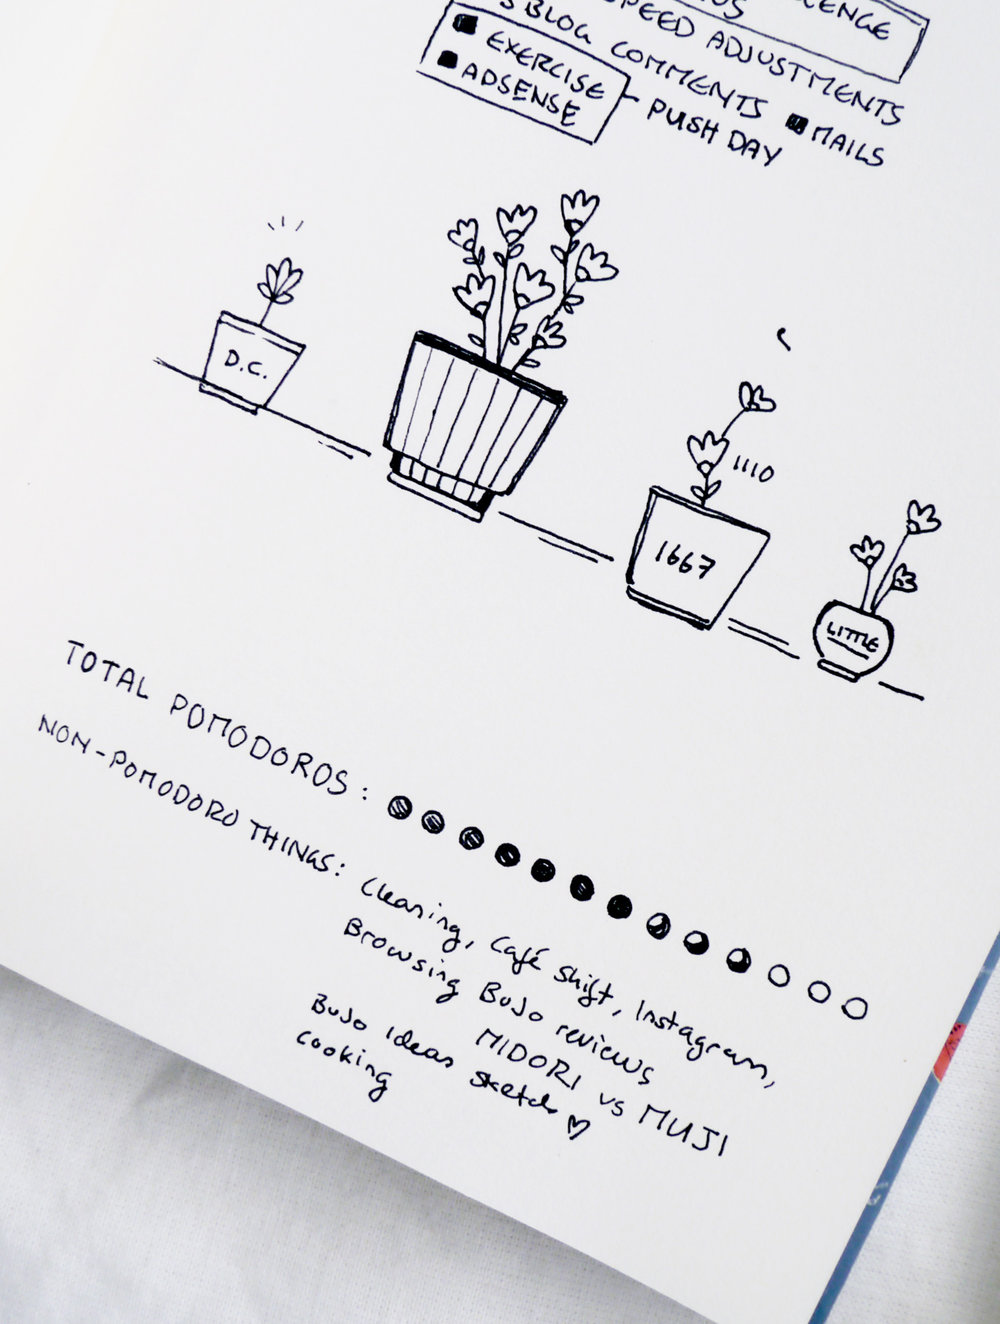 "I grouped my daily tasks into different categories and ""planted"" them in these little flower pot drawings in my bullet journal. Of course, those were inspired by the very name of the Pomodoro technique - I wanted to grow tomatoes. :)"